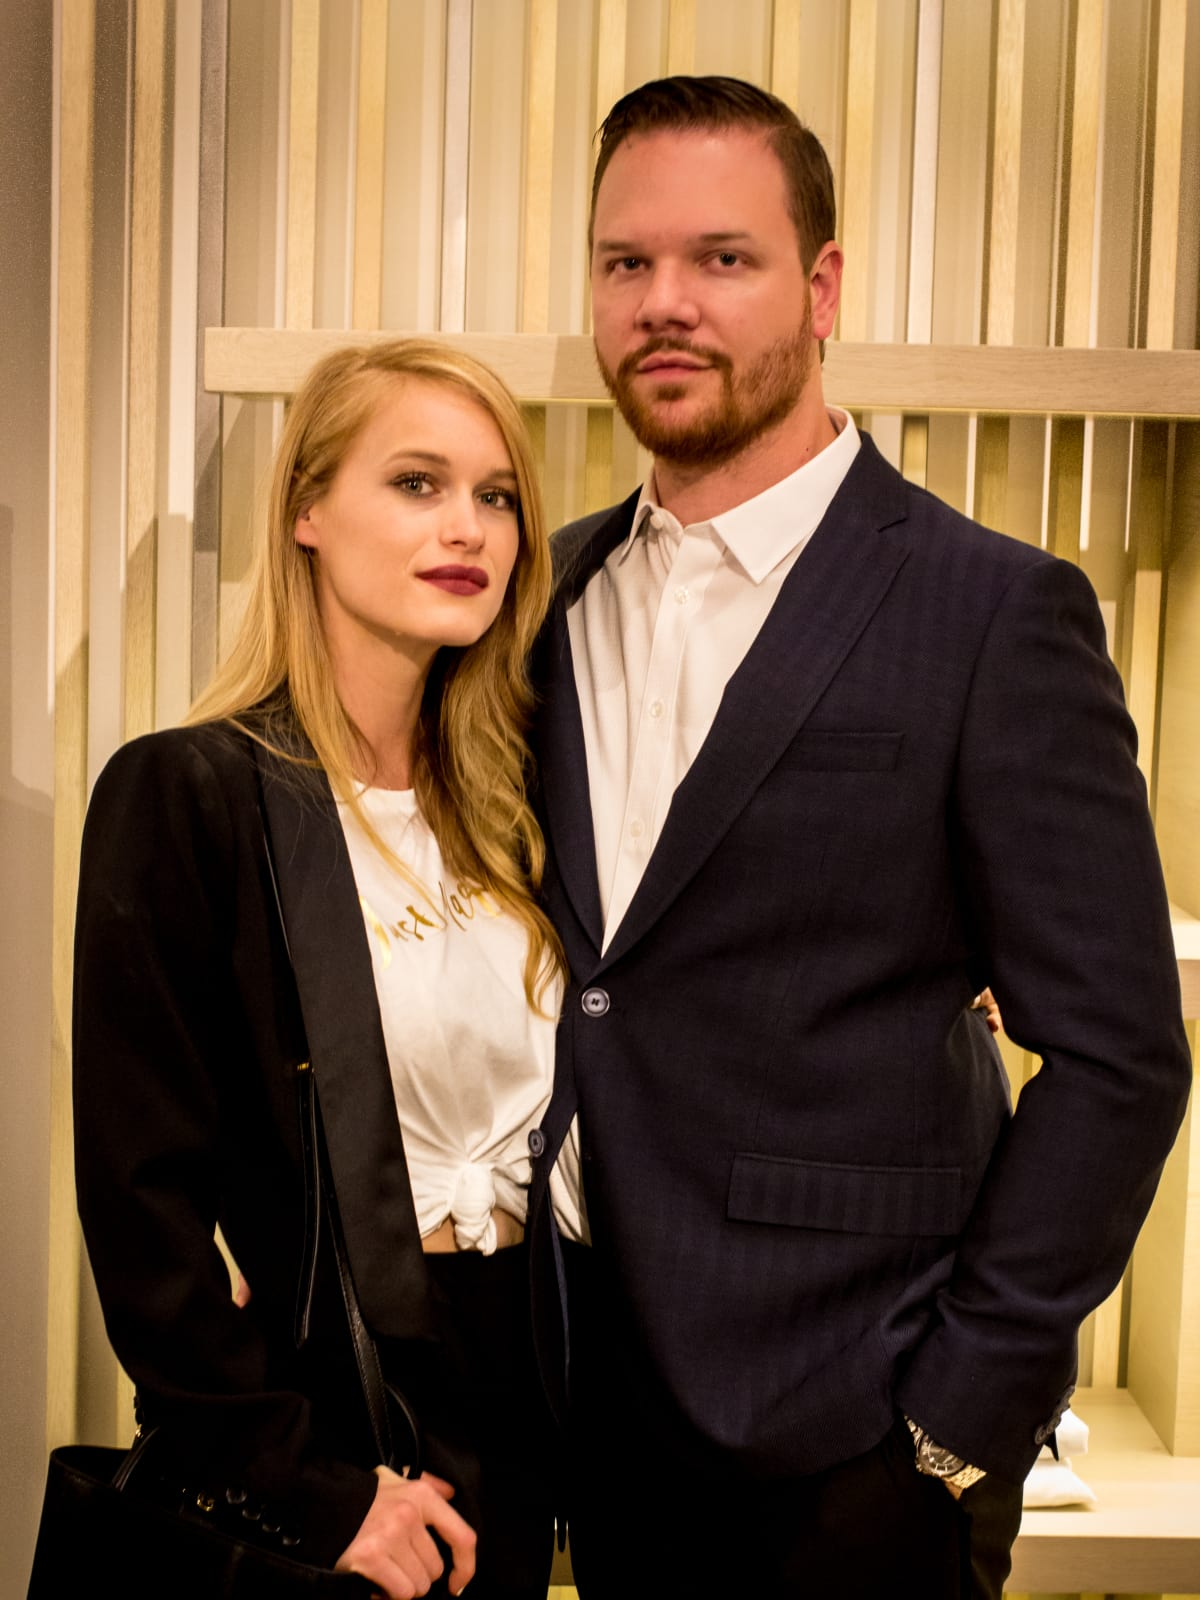 News, Shelby, Intermix opening, Oct. 2015 Leven Rambin, Jim Parrack